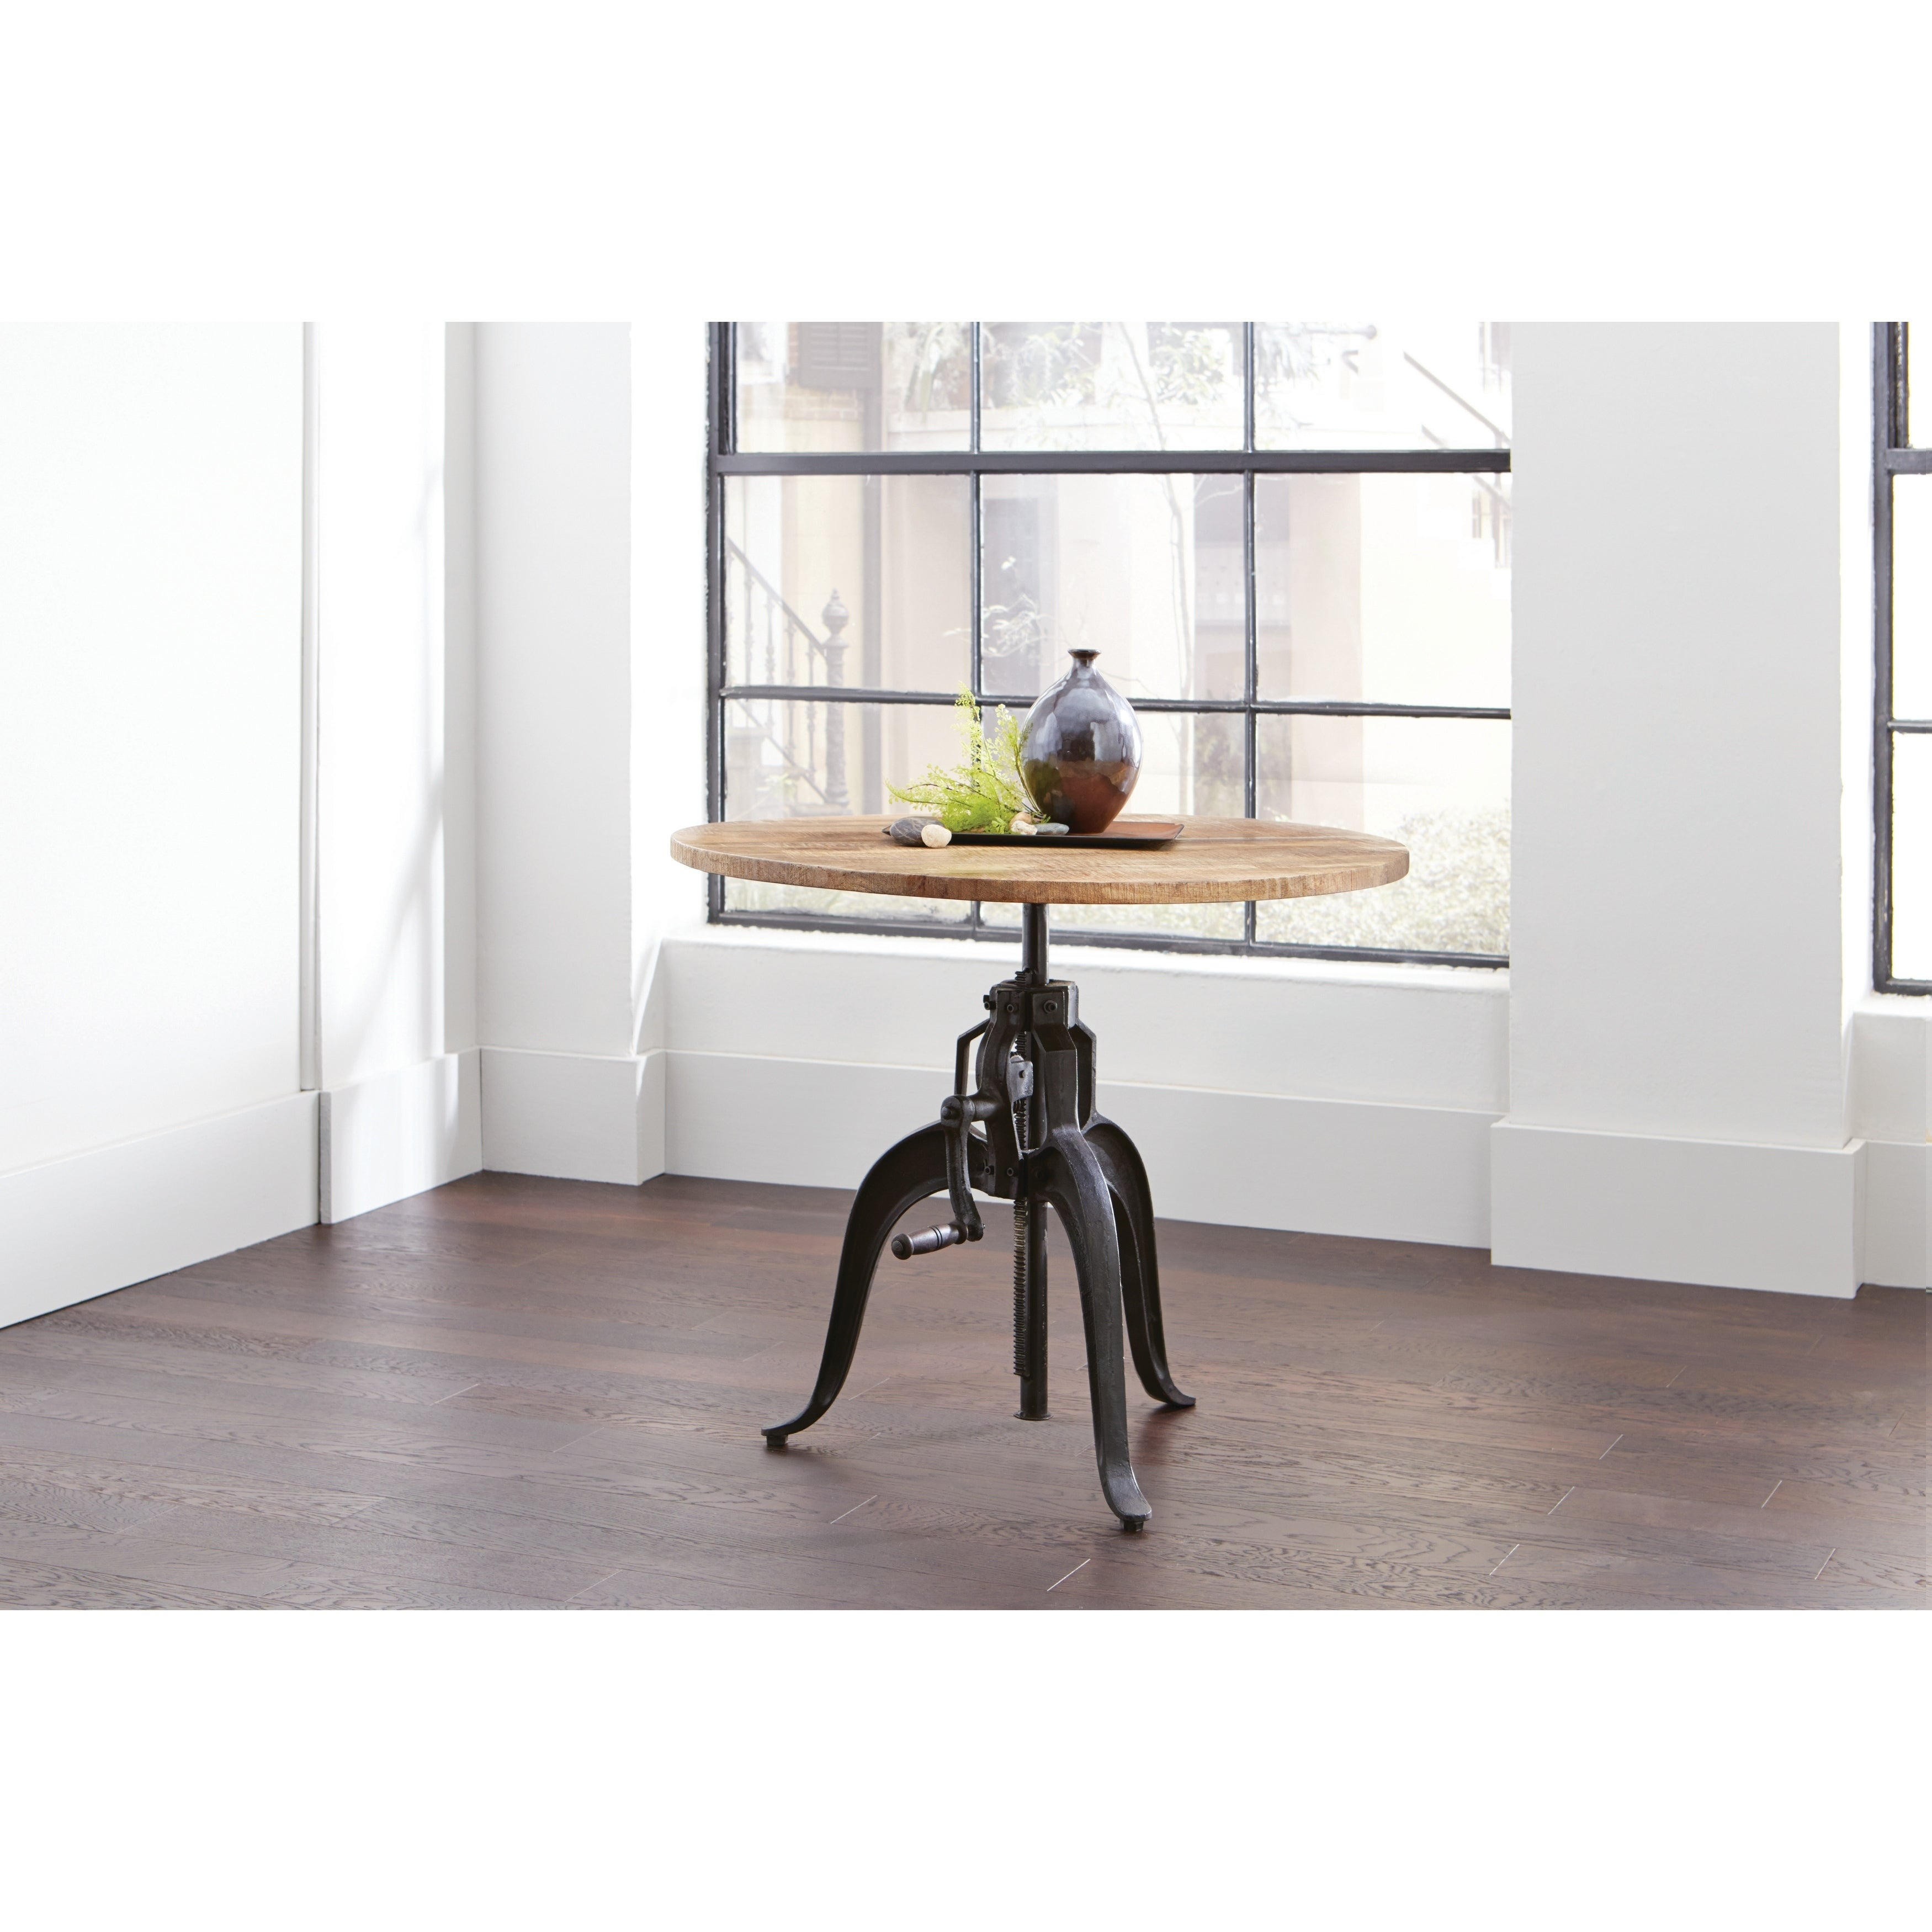 Shop galway adjustable height dining table black brown free shipping today overstock com 22579200